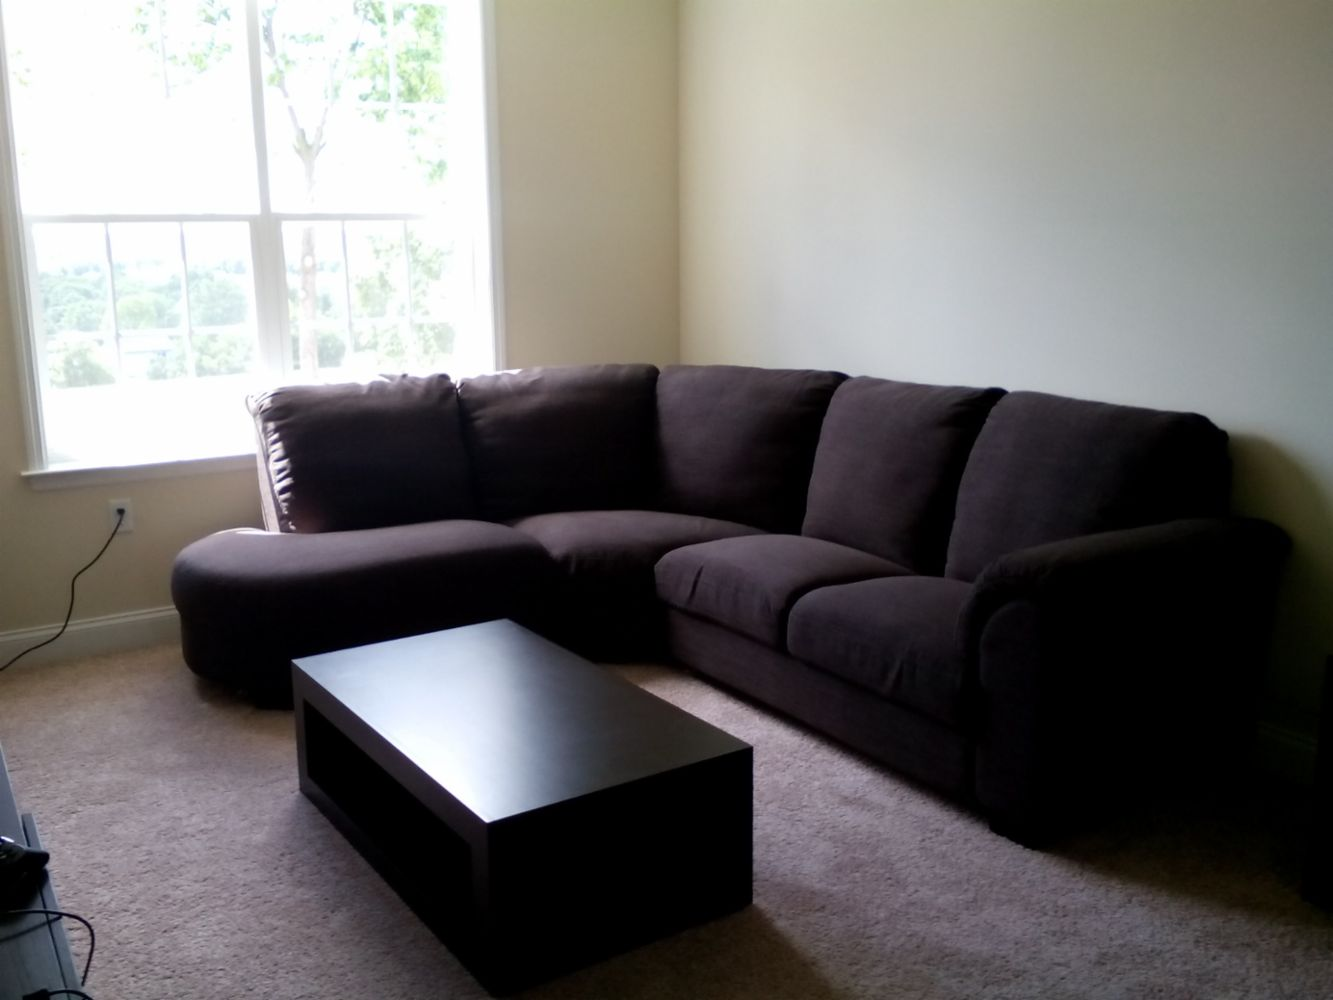 ikea furniture assembly in mount joy pa. Furniture Assembly in Hightstown  NJ   S J Home Services LLC